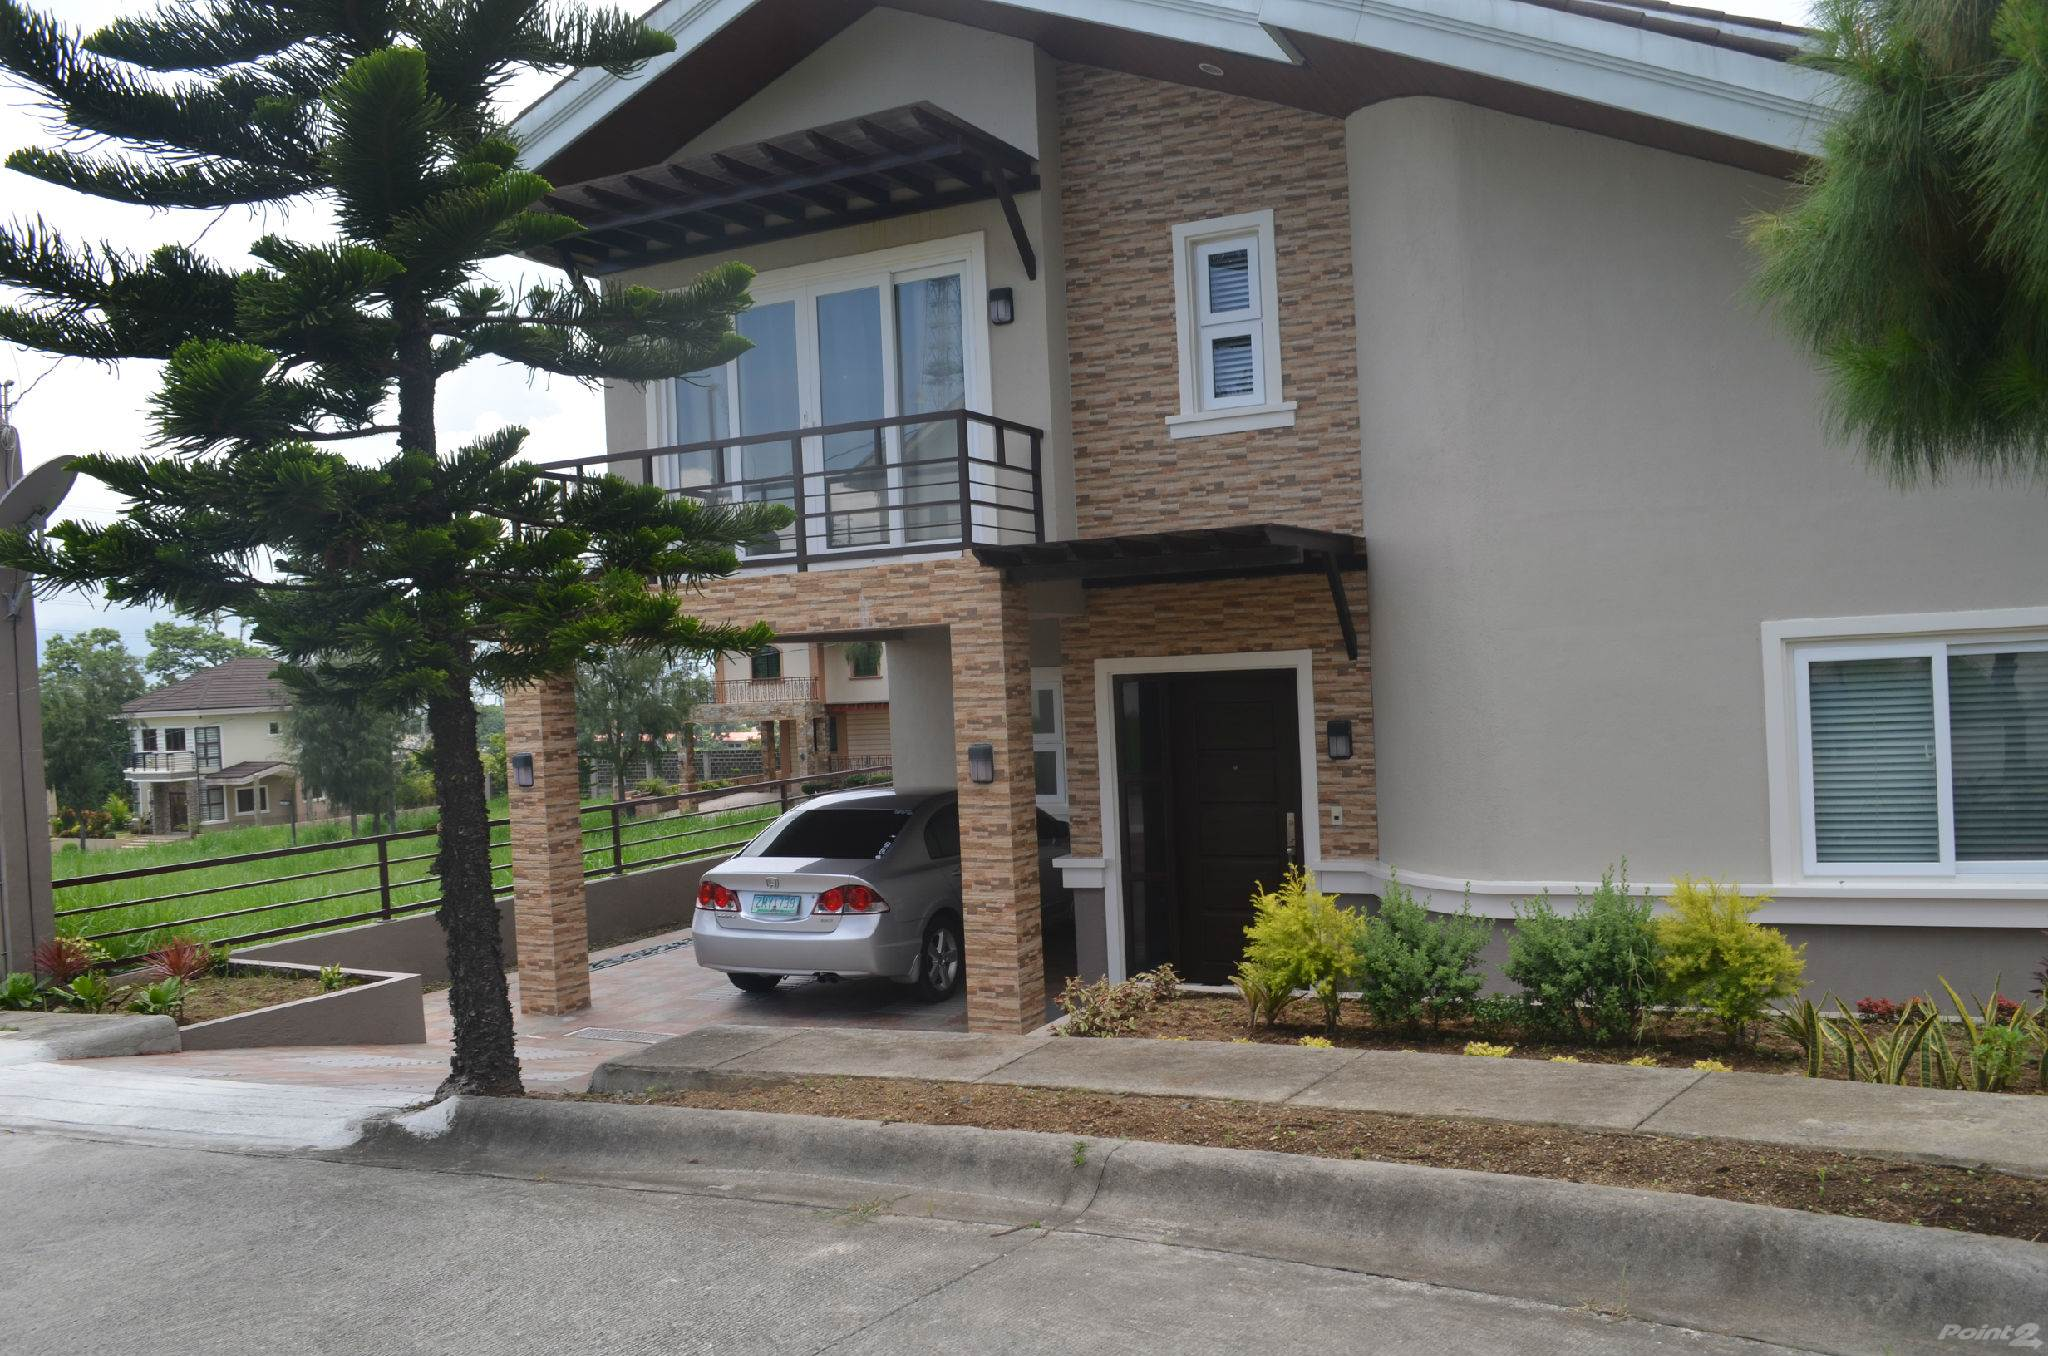 Residential For Sale in Bloomfield, Tagaytay, Cavite ,4120  , Philippines